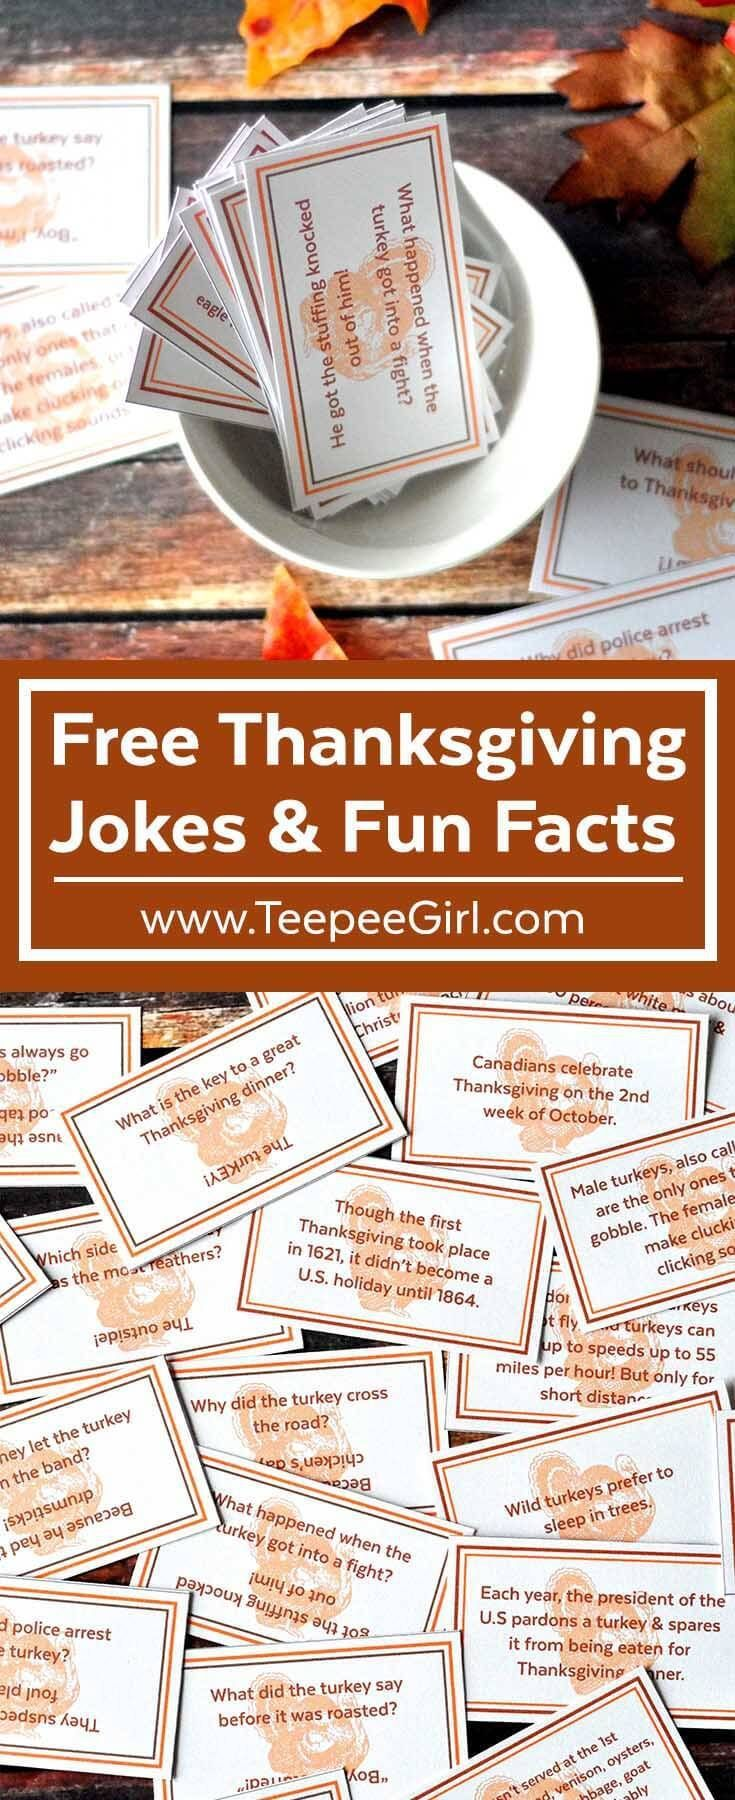 Free Thanksgiving Joke/Fun Fact Printable Cards #thanksgivingdecor